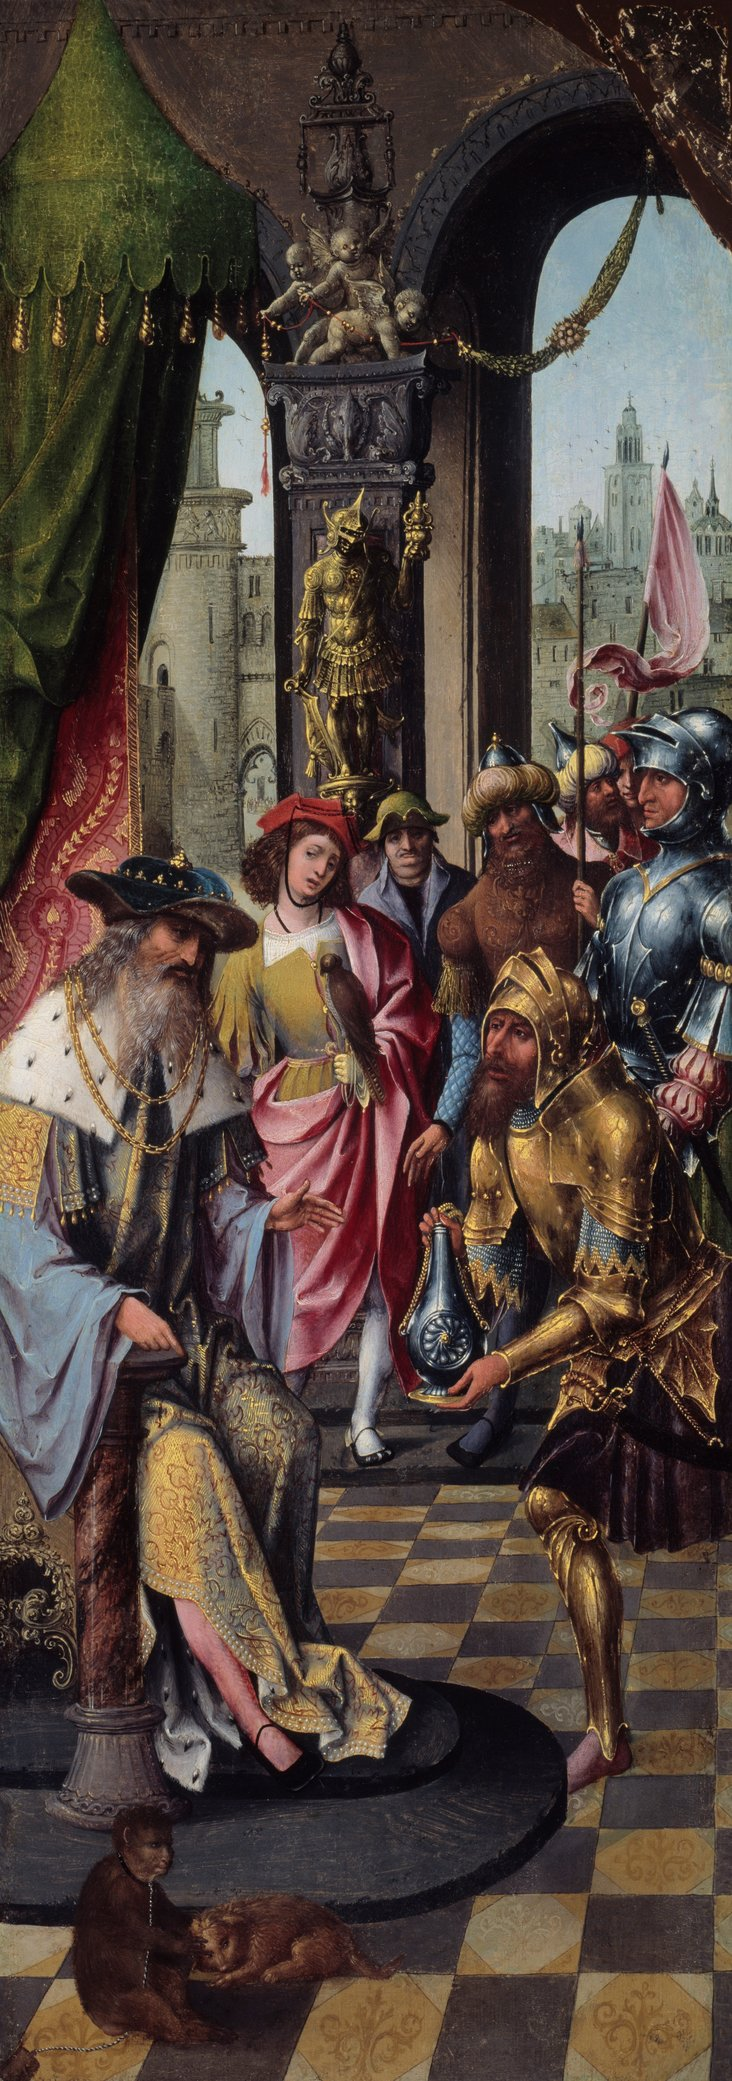 King David Receiving the Cistern Water of Bethlehem by Master of the Antwerp Adoration Group